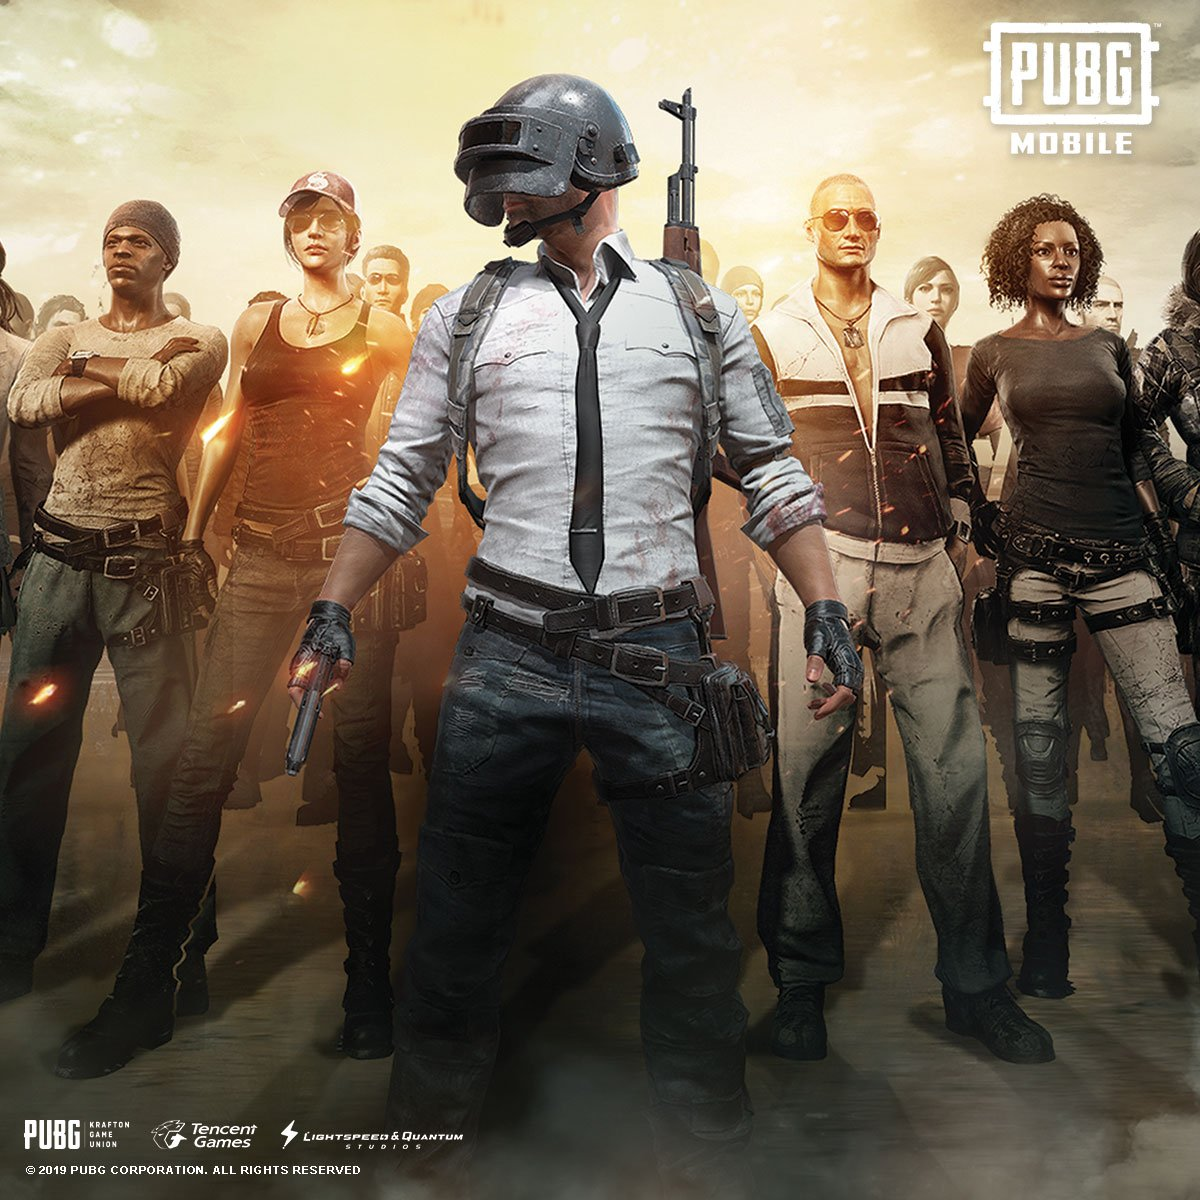 Pubg Mobile On Twitter Fair Gameplay In Pubg Mobile Is Incredibly Important And We Continue To Ban Cheaters To Maintain An Even Playing Field Here Is A Partial List Of Players Banned